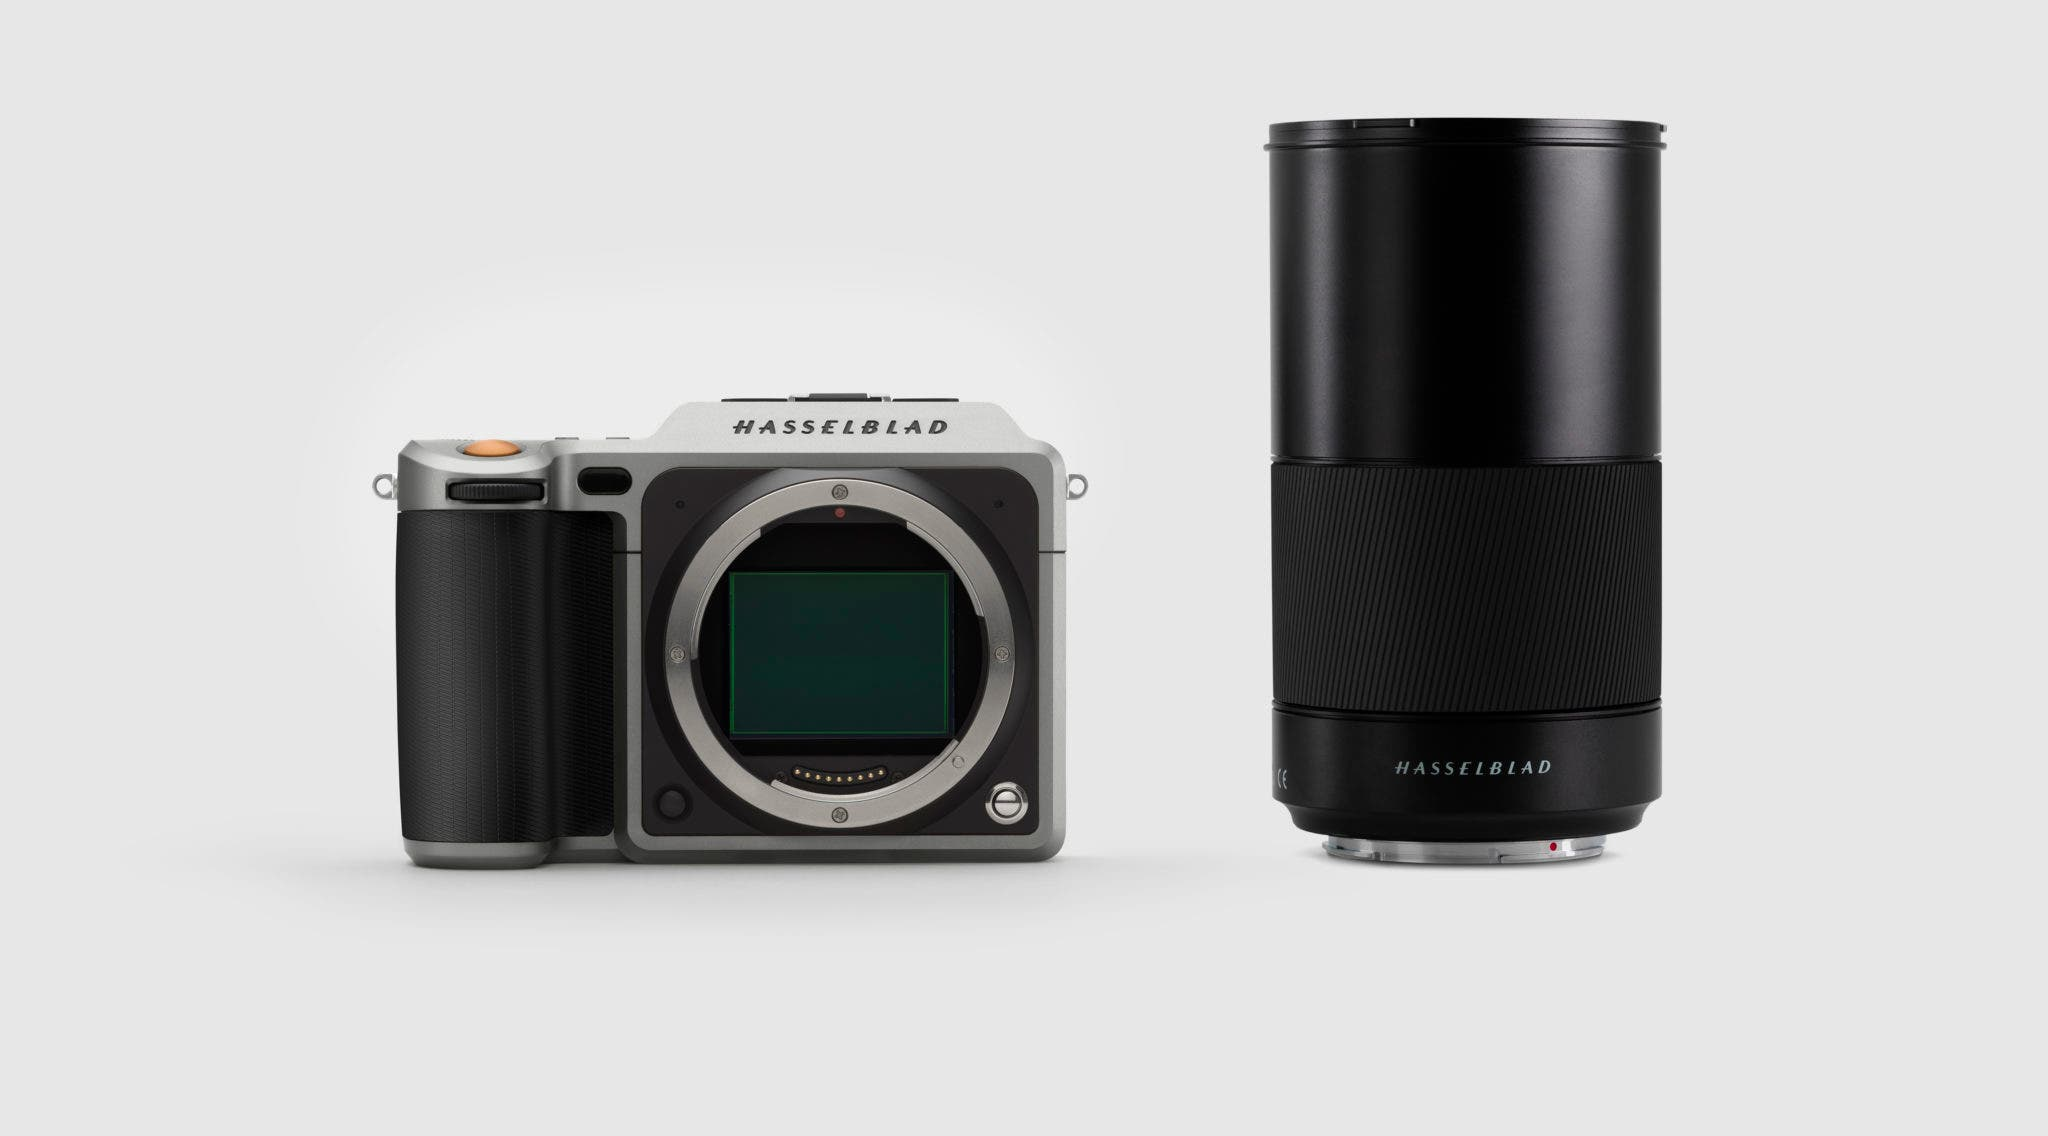 Hasselblad Introduces New 120mm f3.5 Macro Lens for the X1D